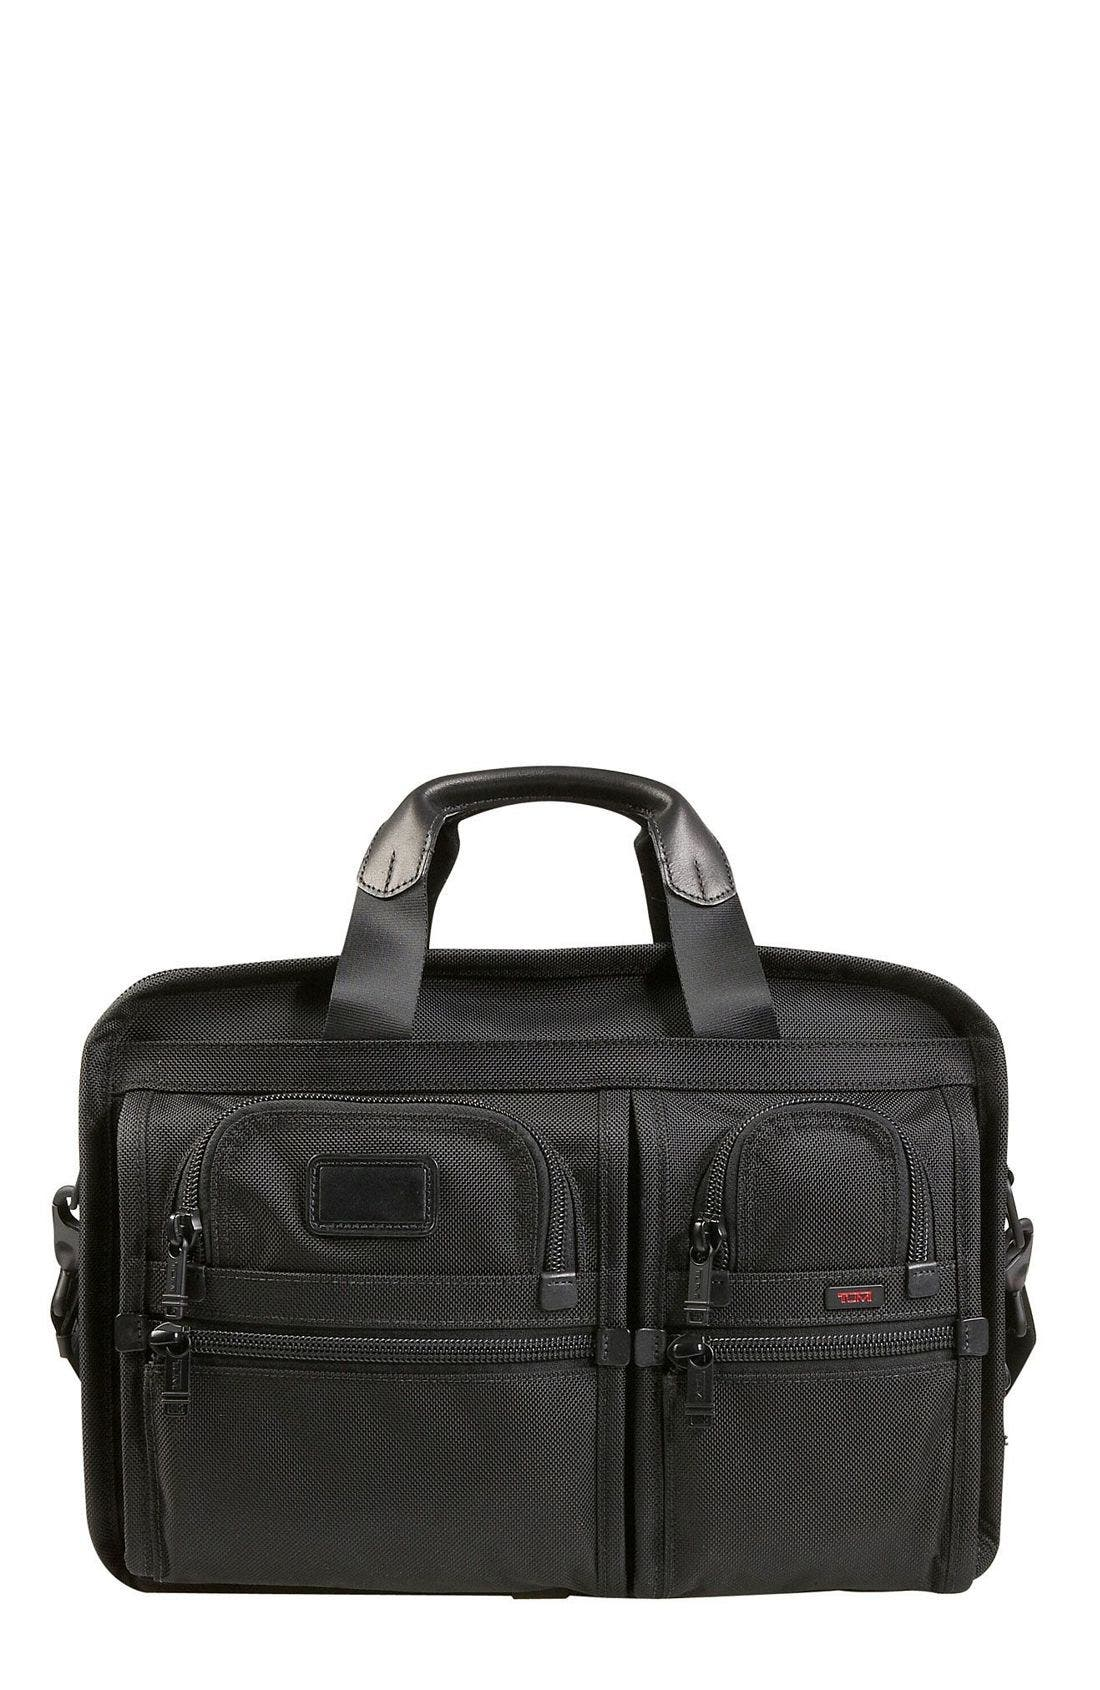 Alternate Image 1 Selected - Tumi 'Alpha' Expandable Organizer Computer Briefcase